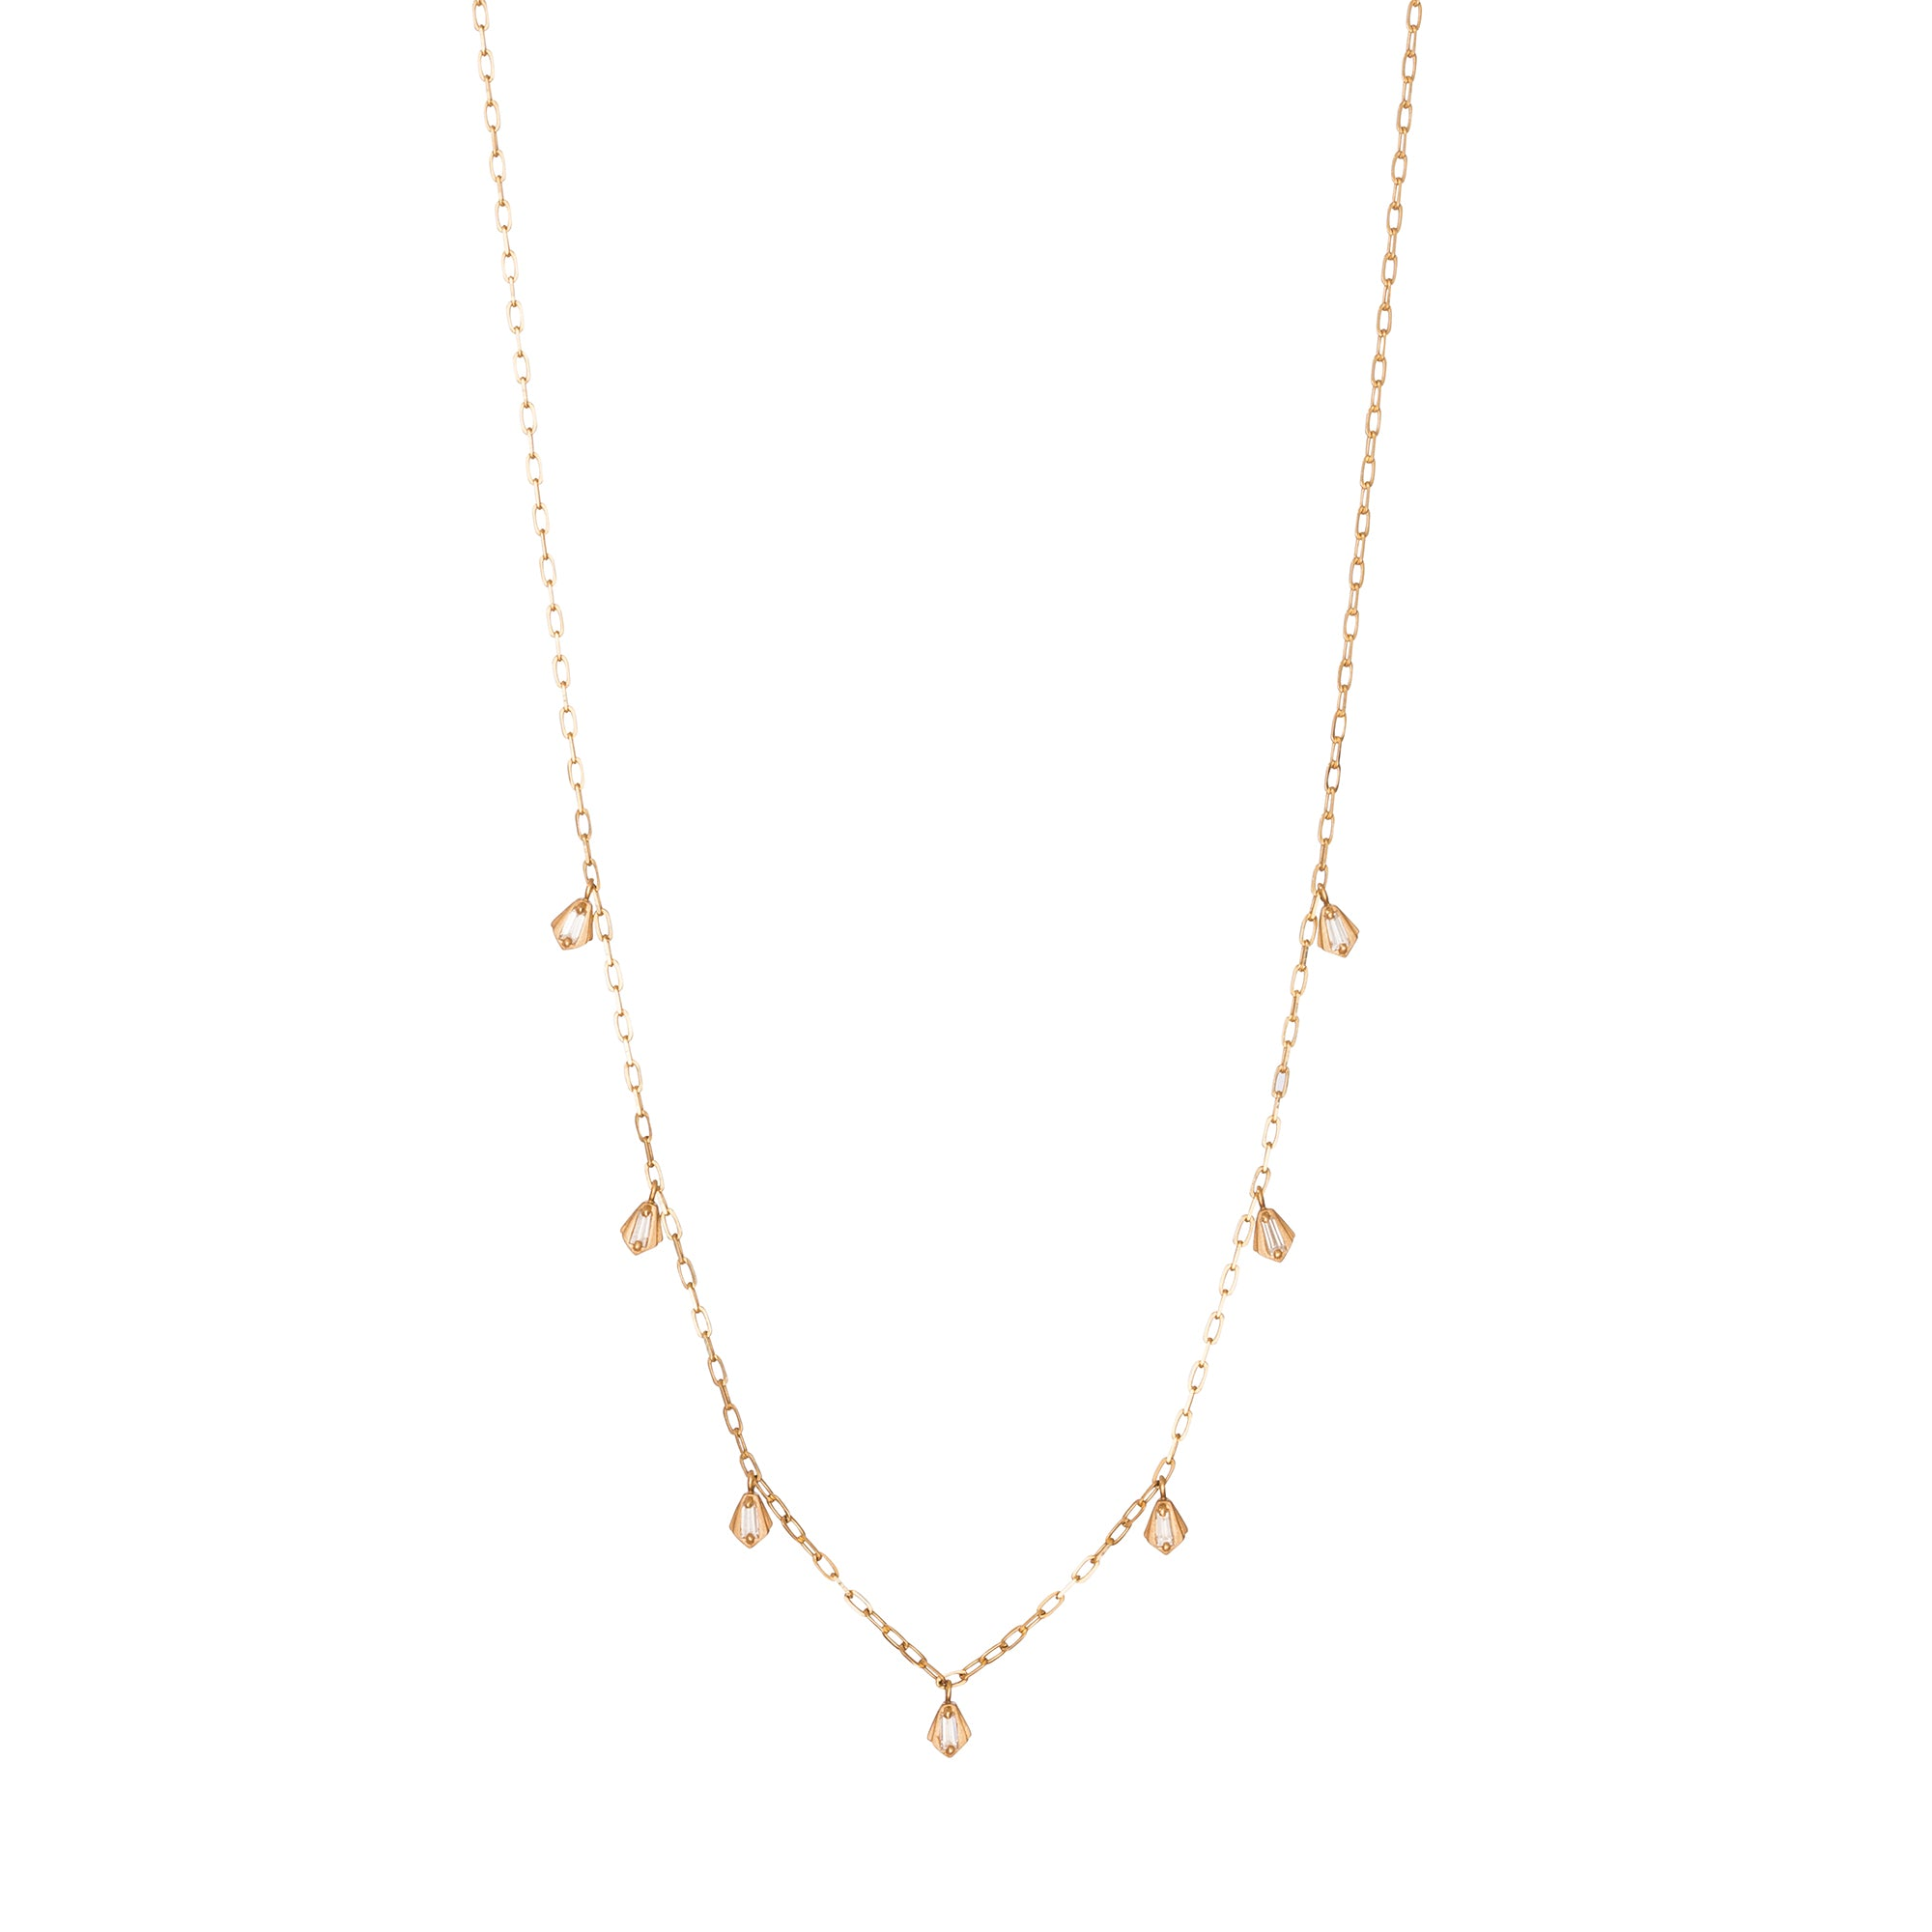 Gold & White Diamond Nomad Lantern Necklace by Michelle Fantaci for Broken English Jewelry